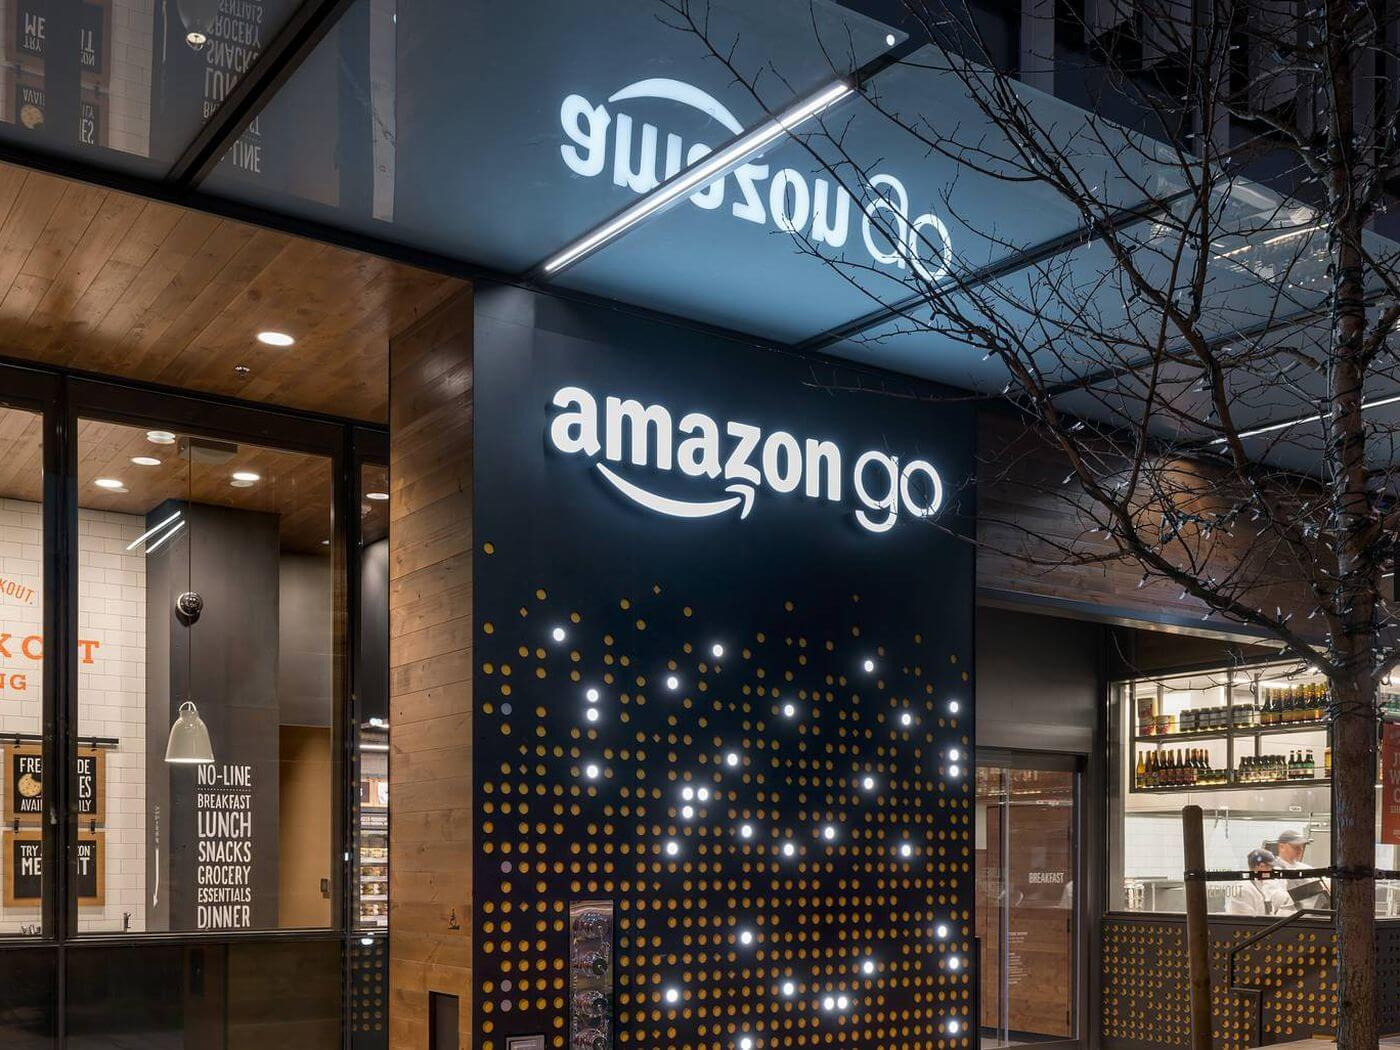 Amazon plans 3,000 high-tech shops